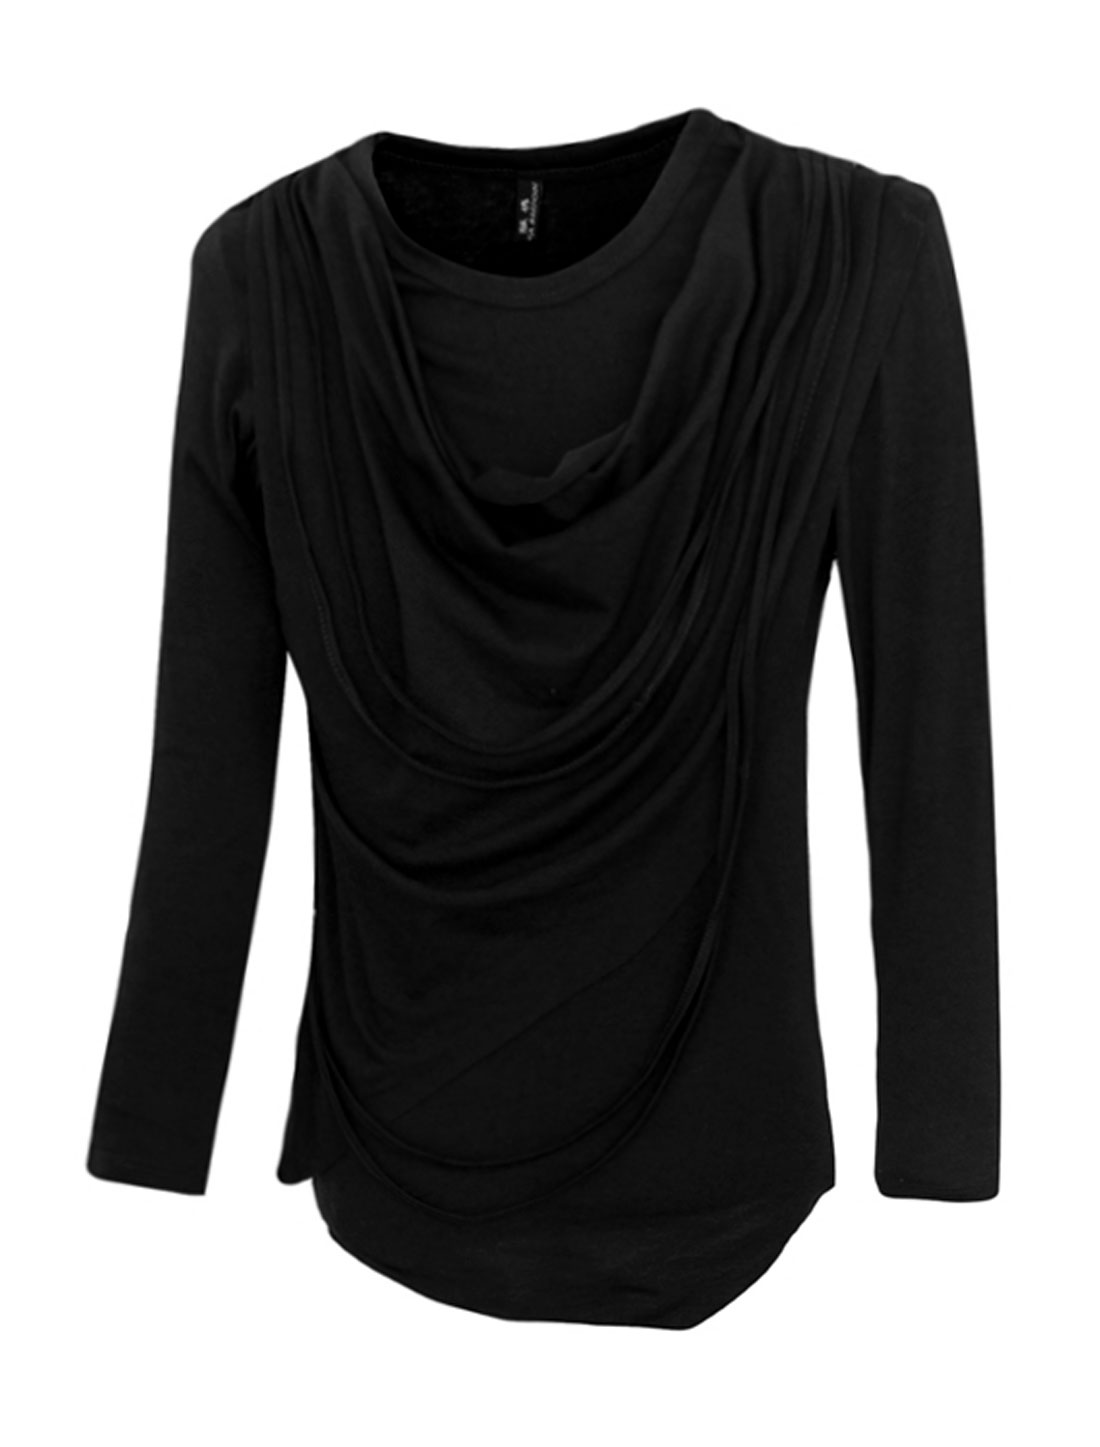 Men Crew Neck Tassels Cowl Design Slim Fit T-Shirt Black M